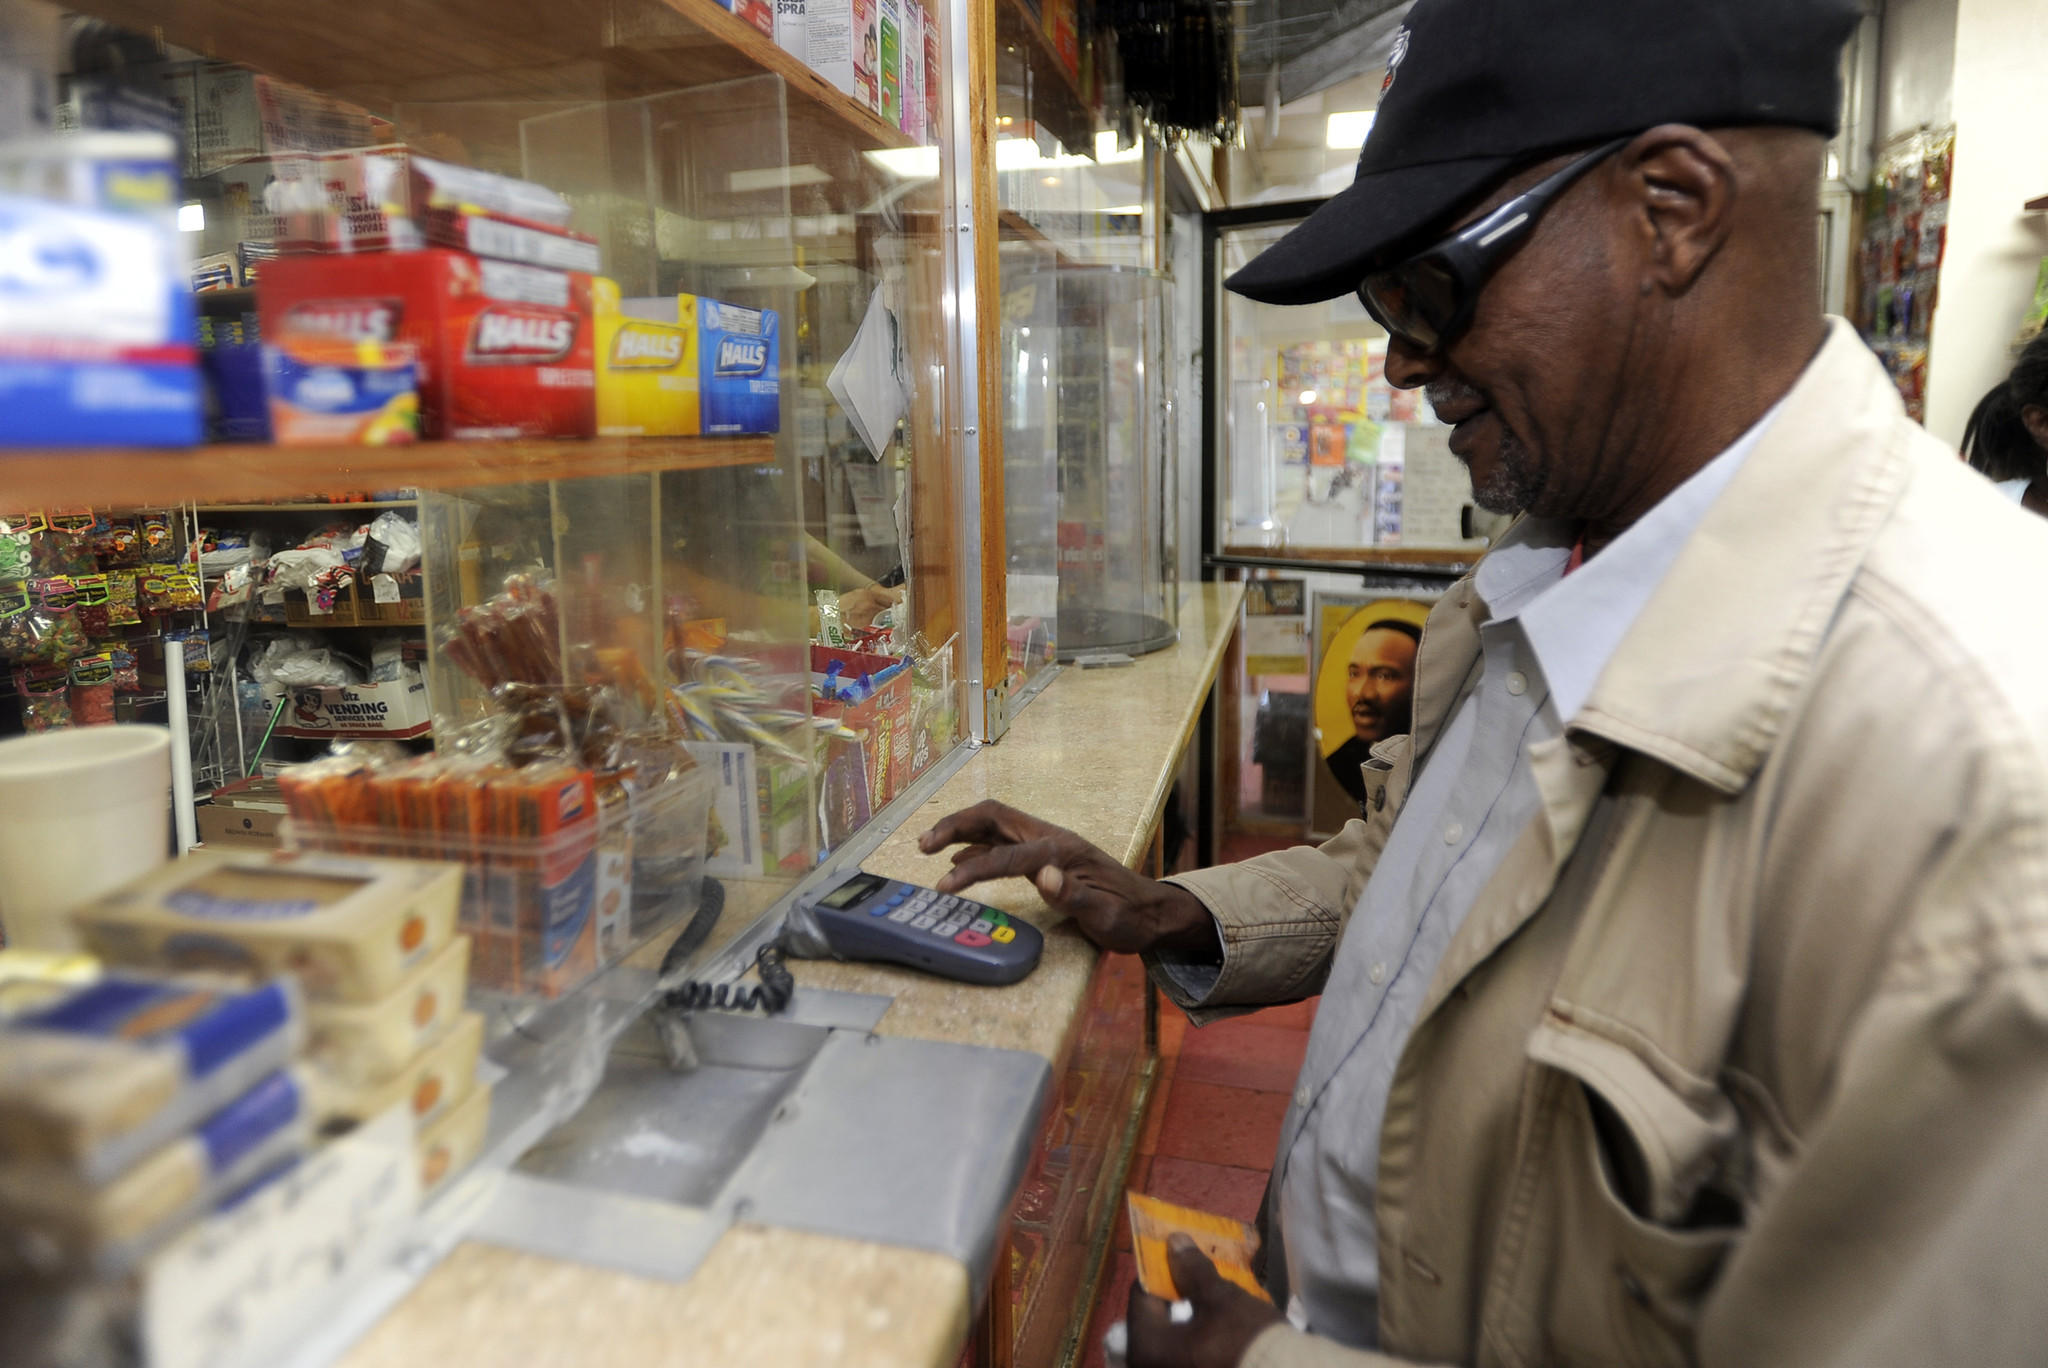 Customer James Gaymon uses a PIN pad to make a purchase with food stamps at the A to Z convenience store on Park Heights Avenue.